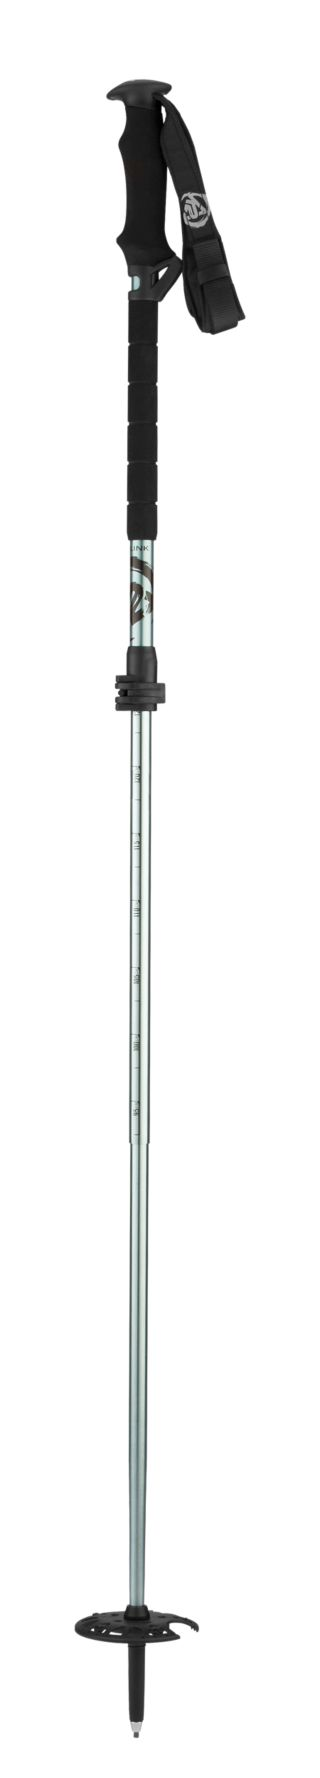 K2 Skis - Speedlink  Ski Pole